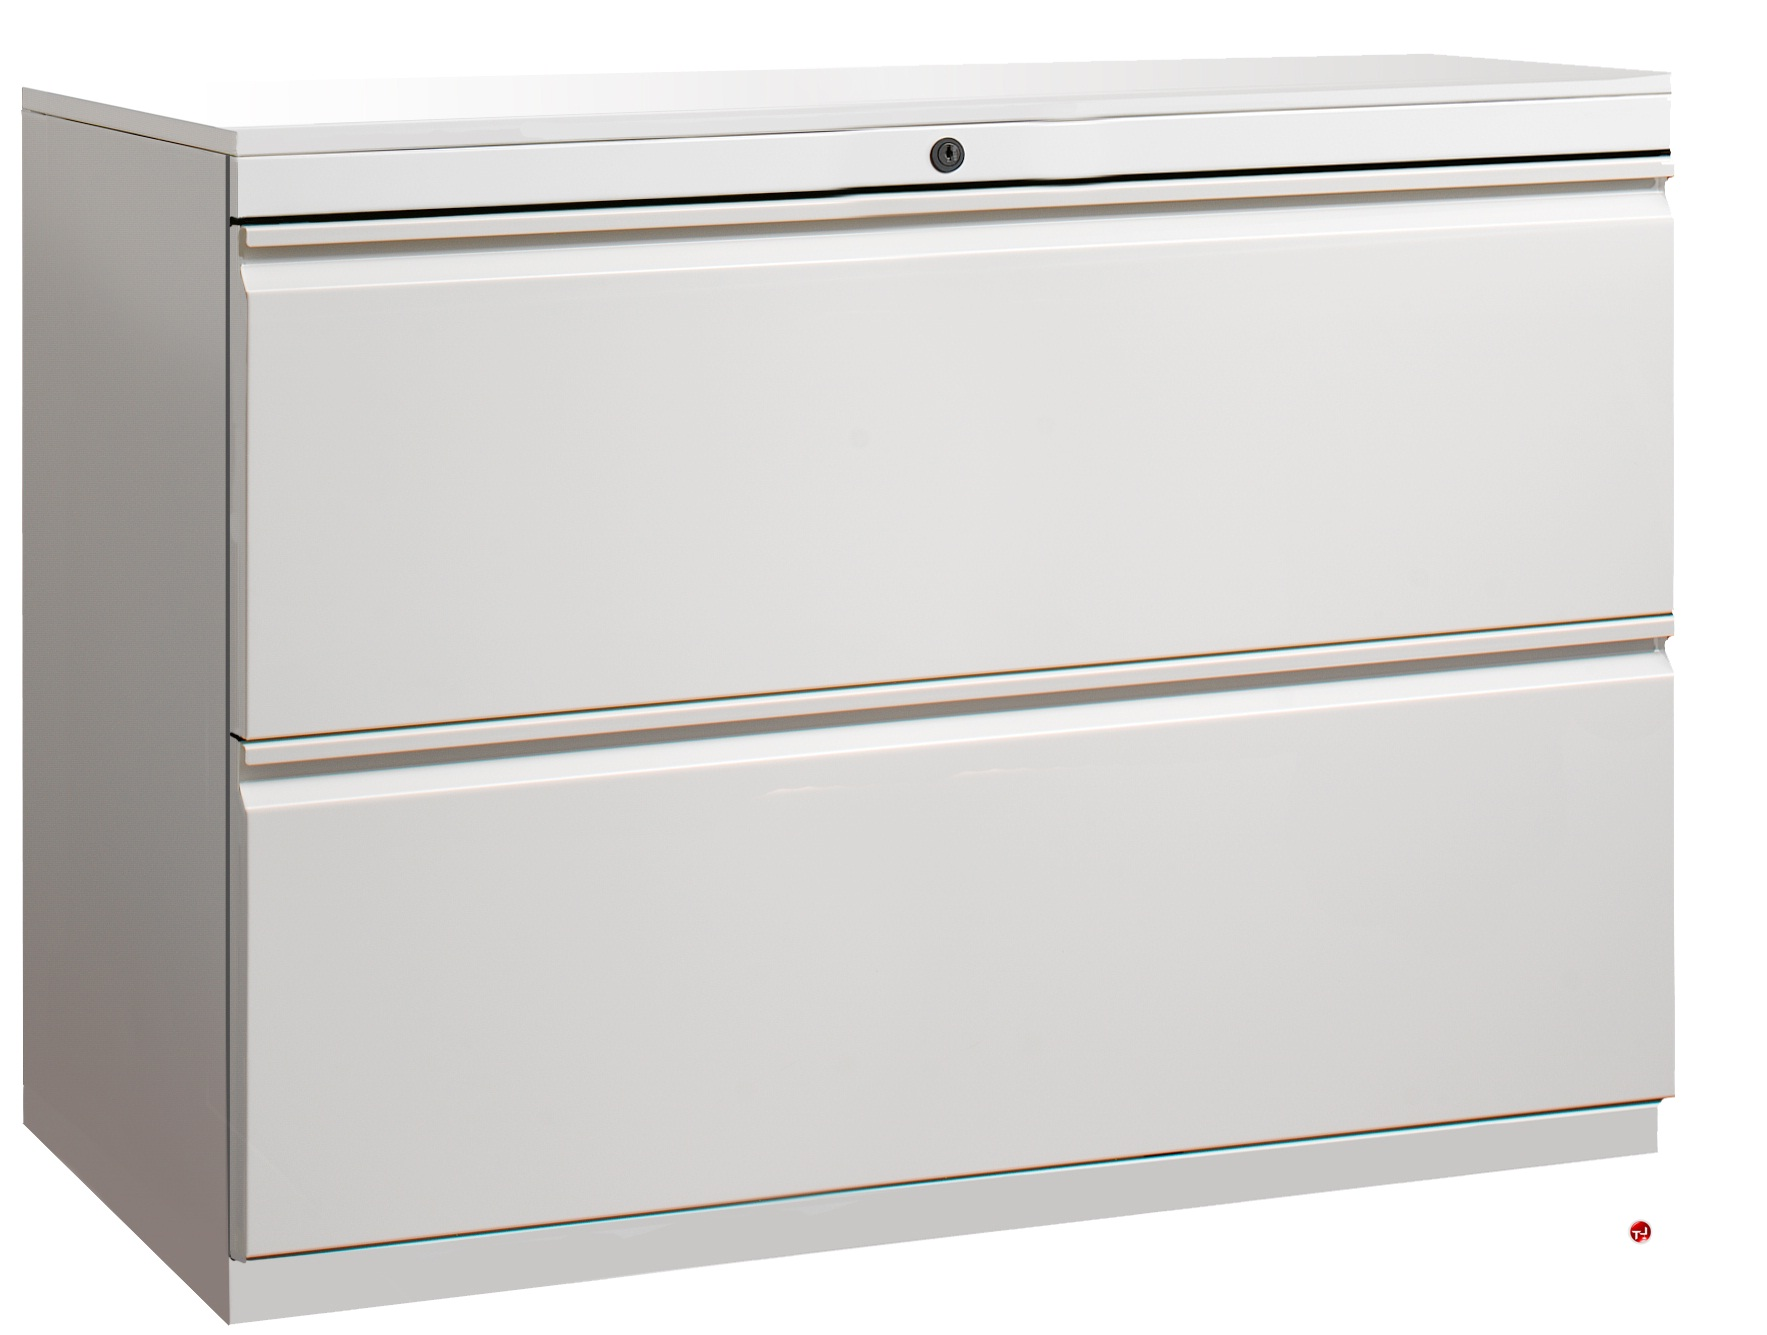 The Office Leader 2 Drawer Trace Lateral File Storage